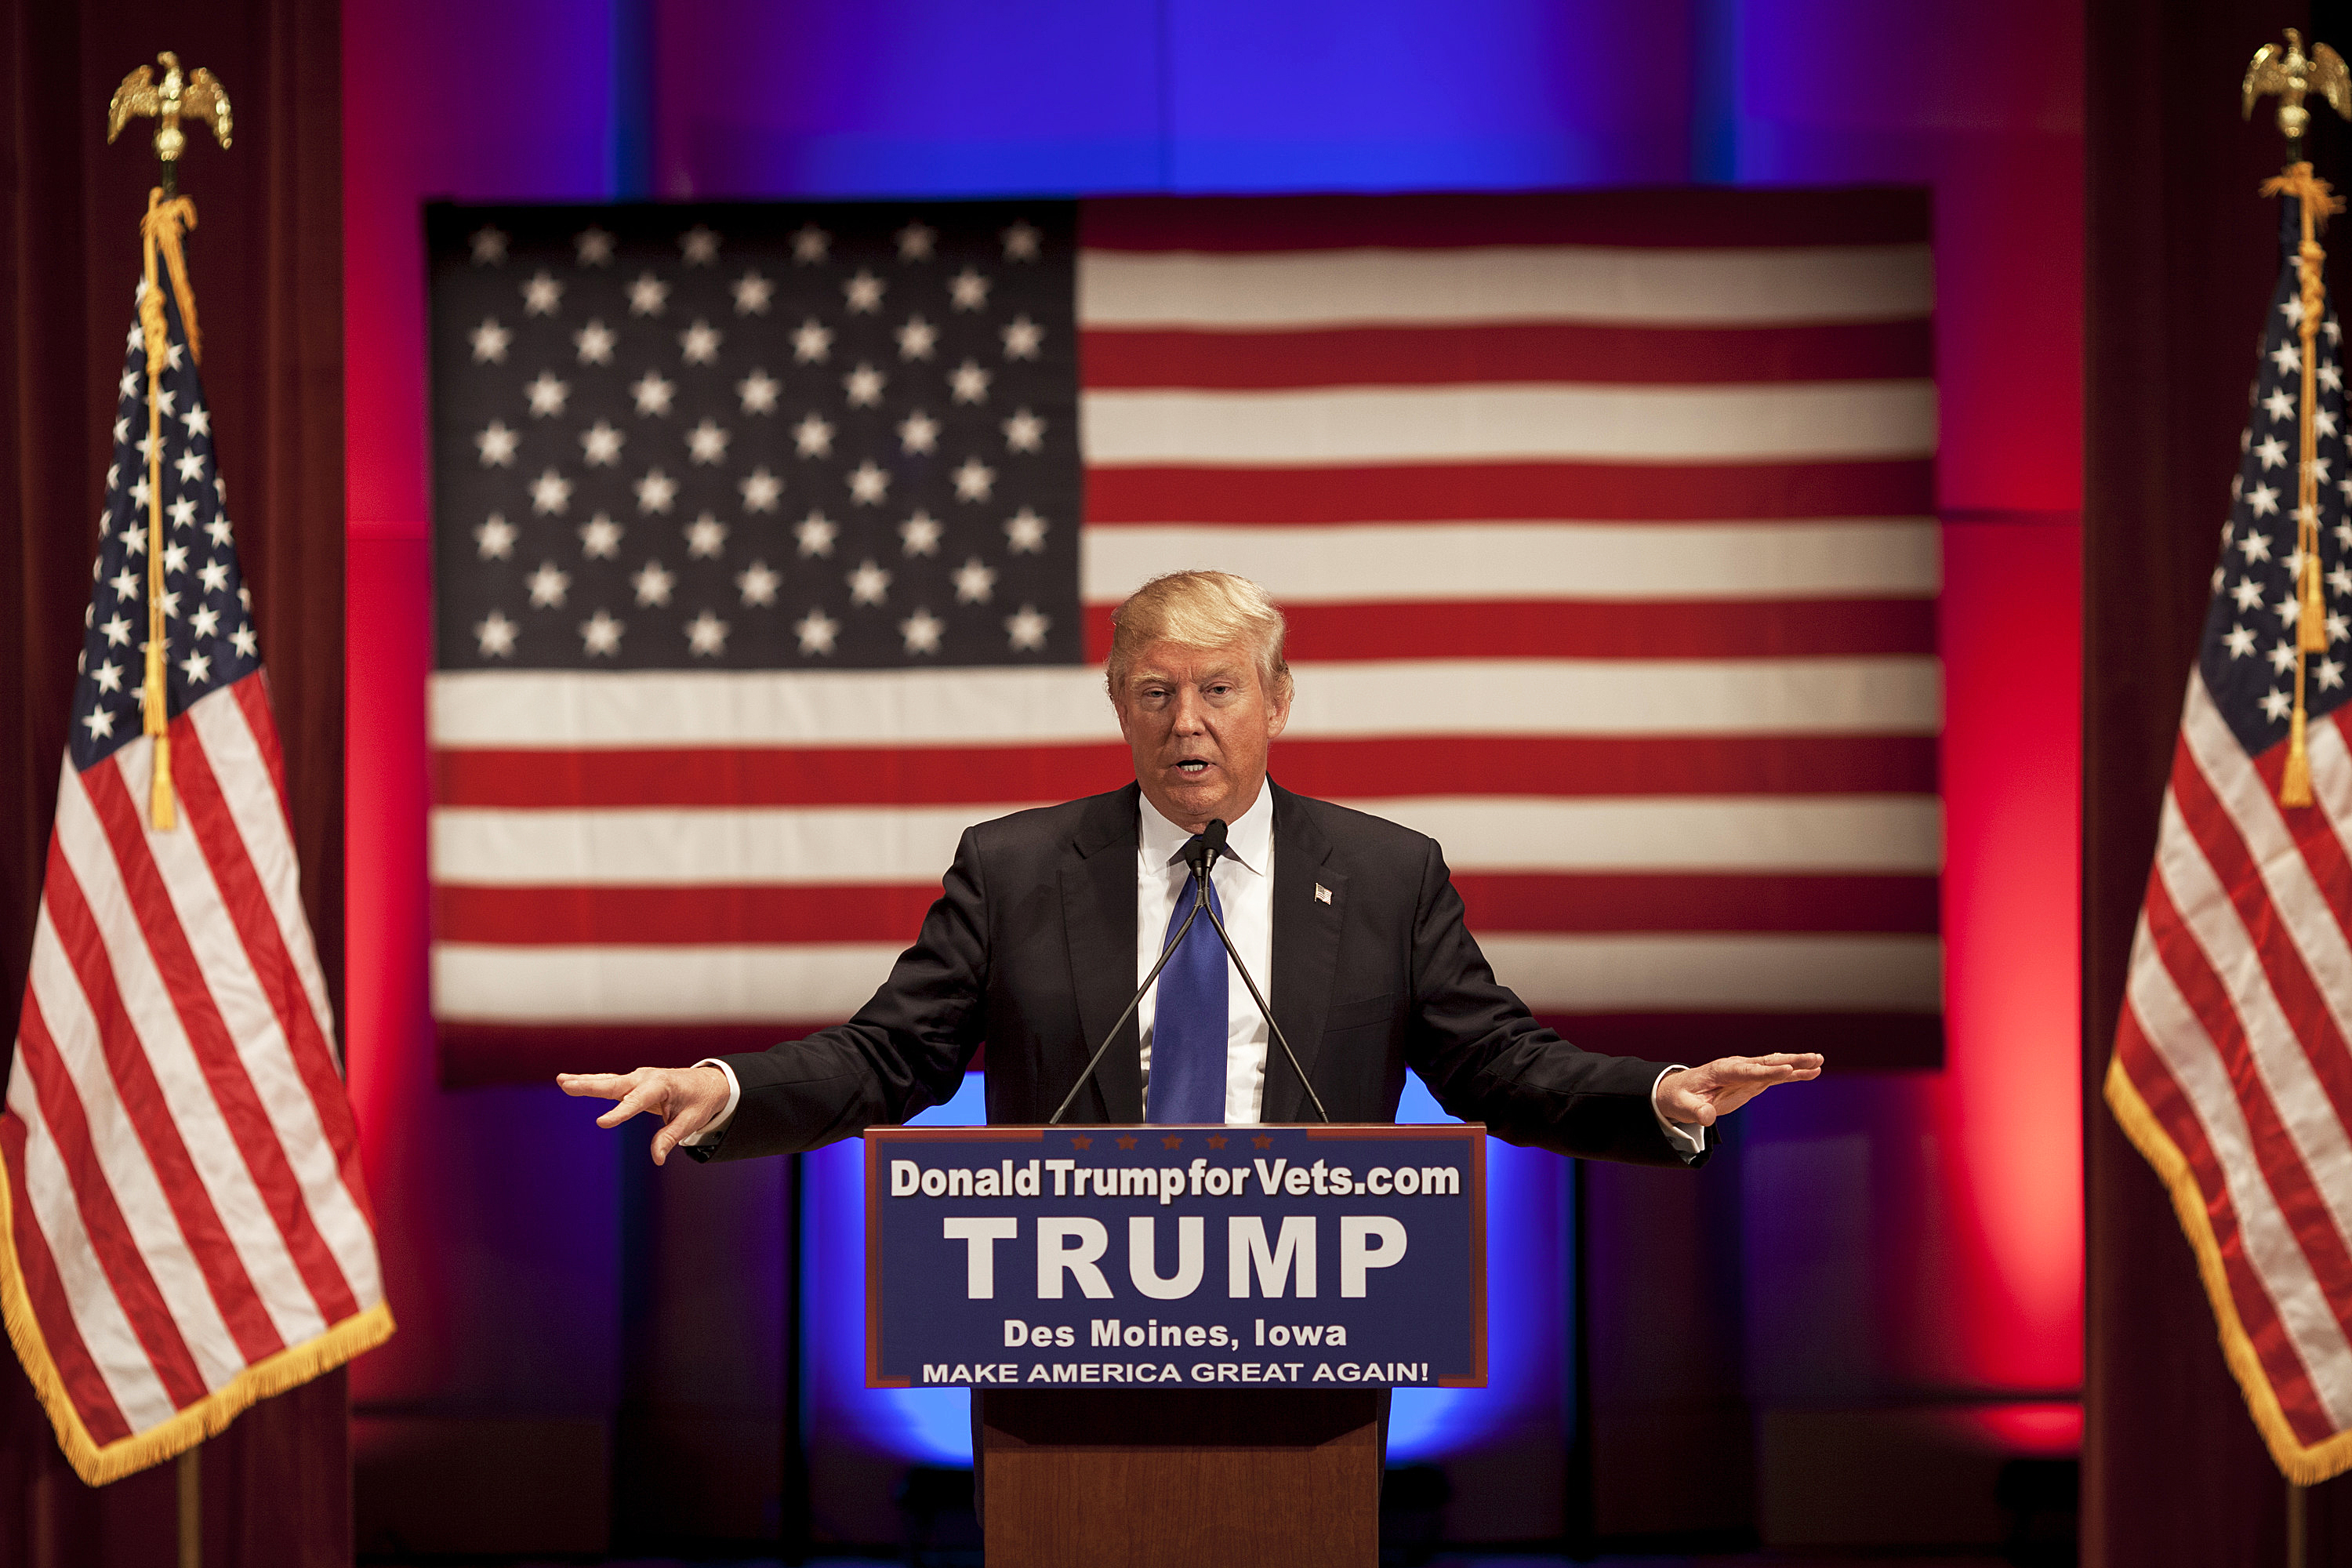 Donald Trump speaks at a rally for veterans in Des Moines, Iowa on Jan. 28, 2016.